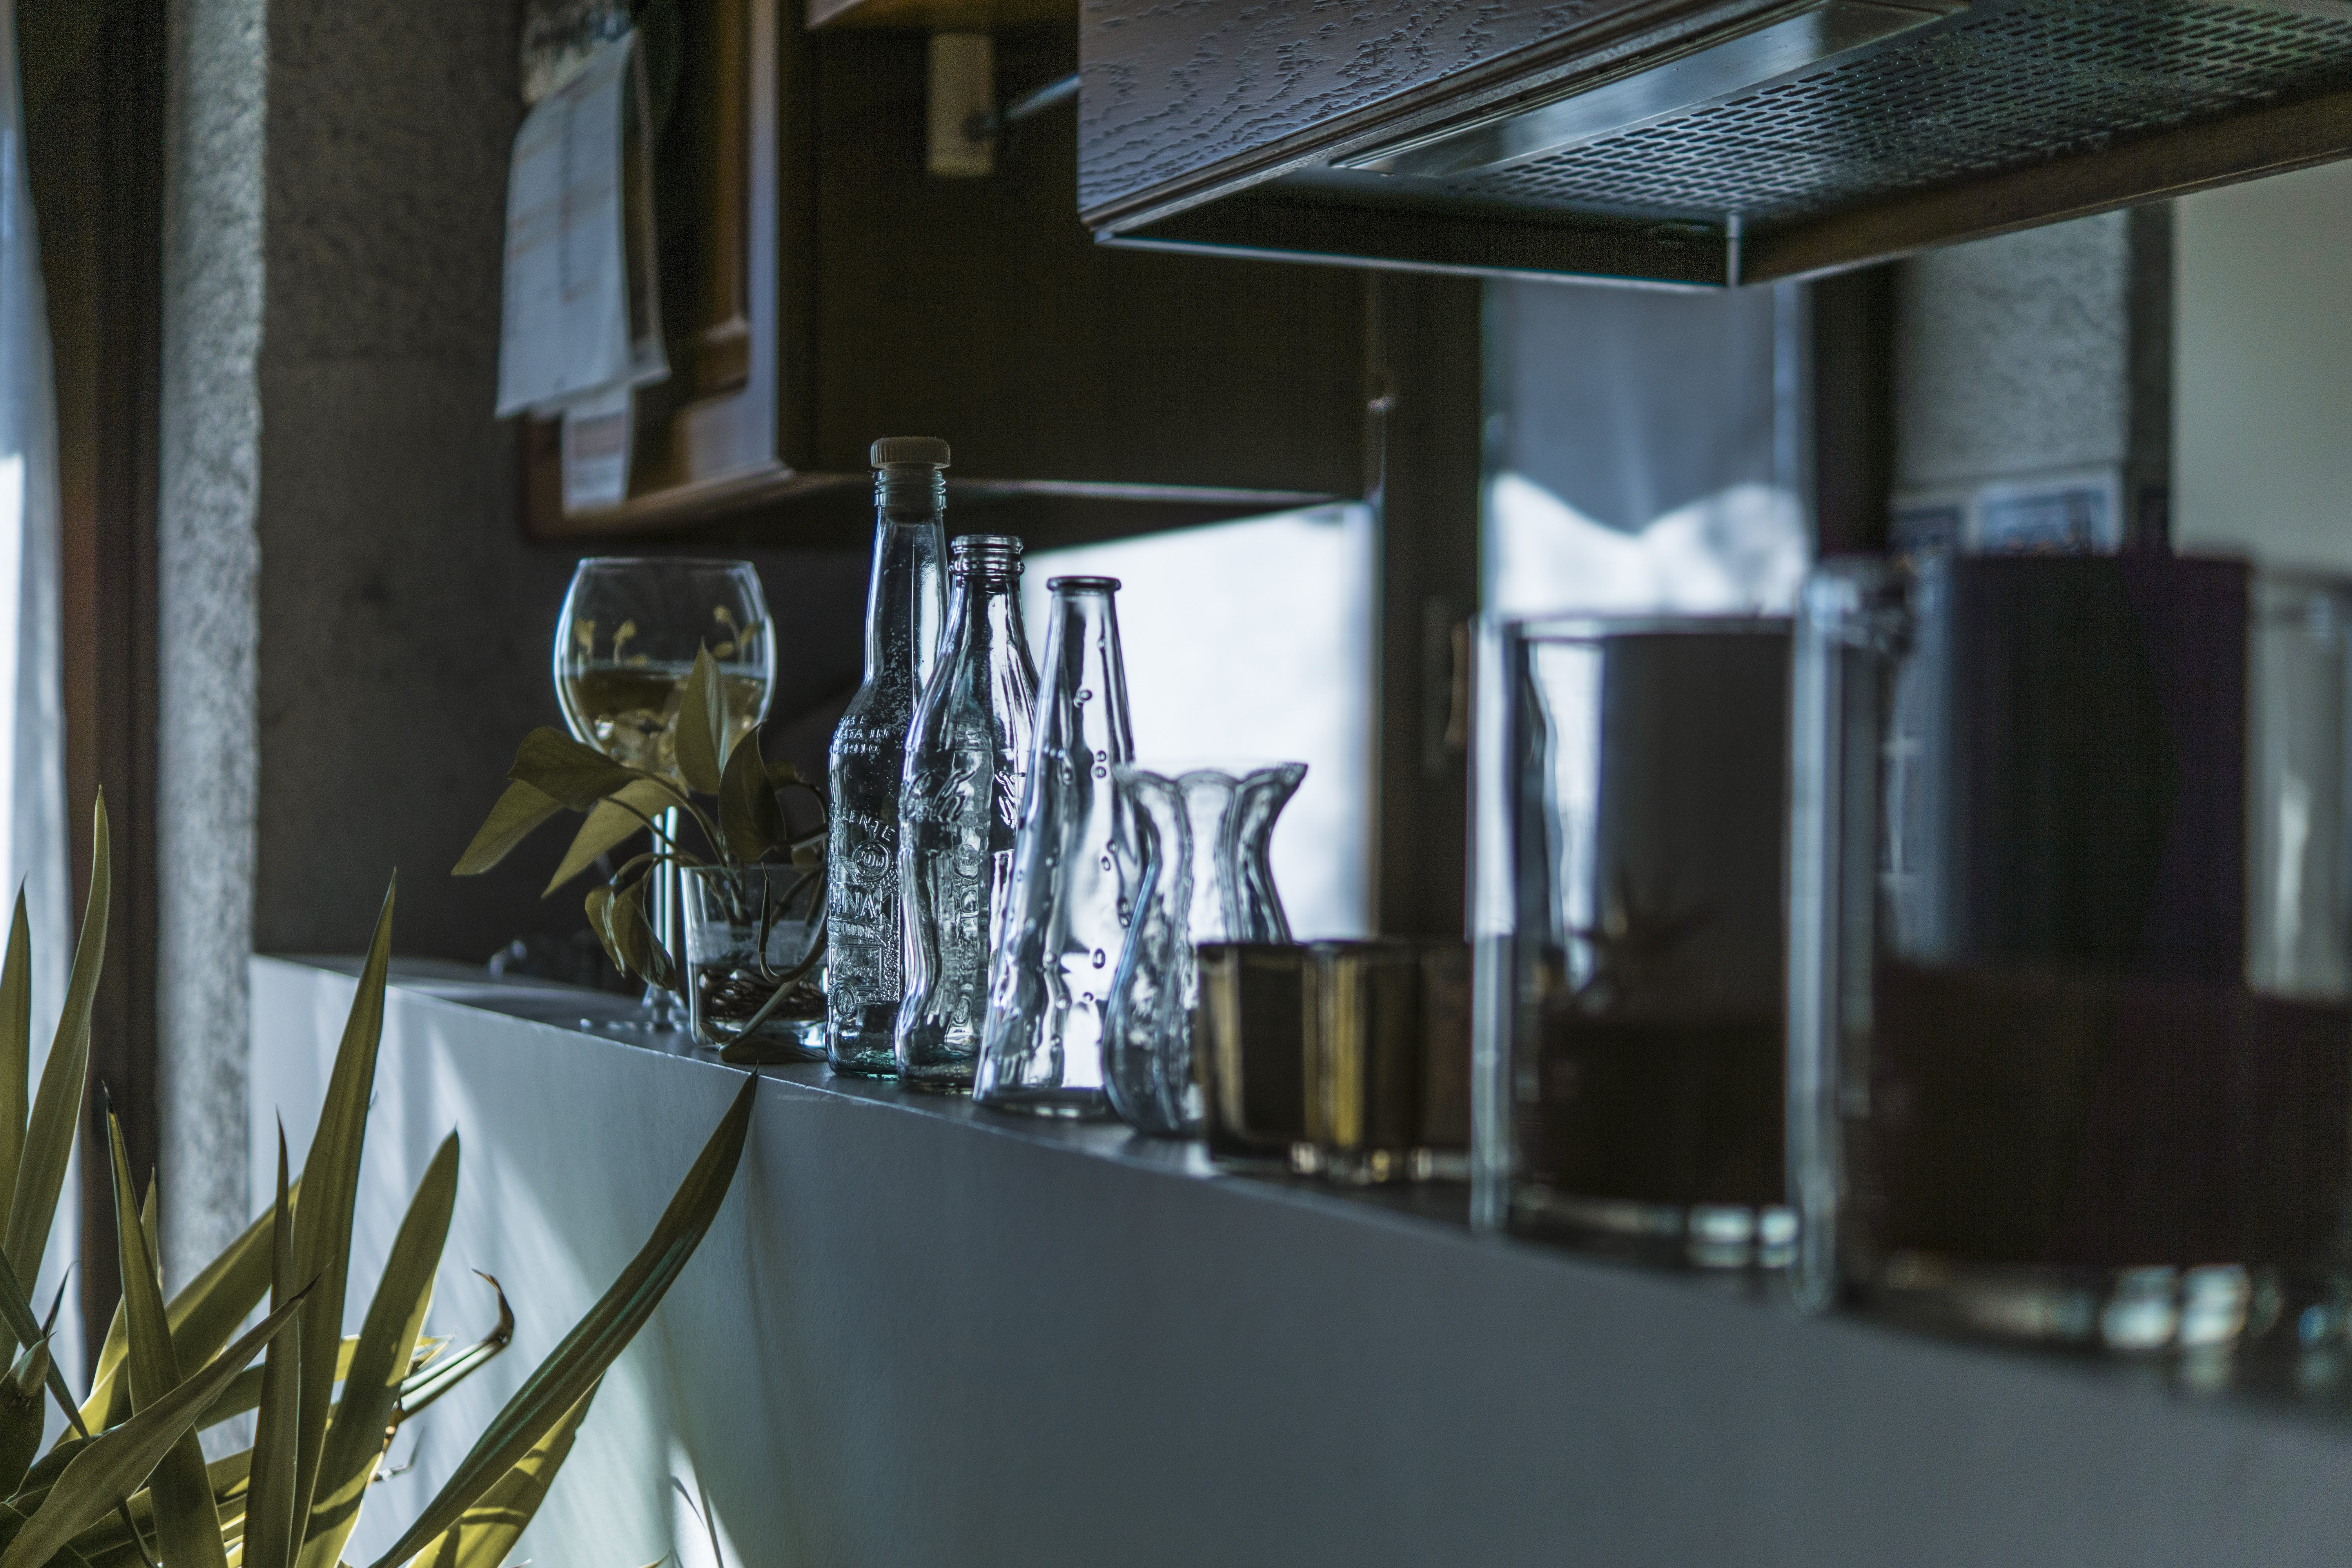 Assorted Clear Glass Bottles With Wine Glass in the Shelf